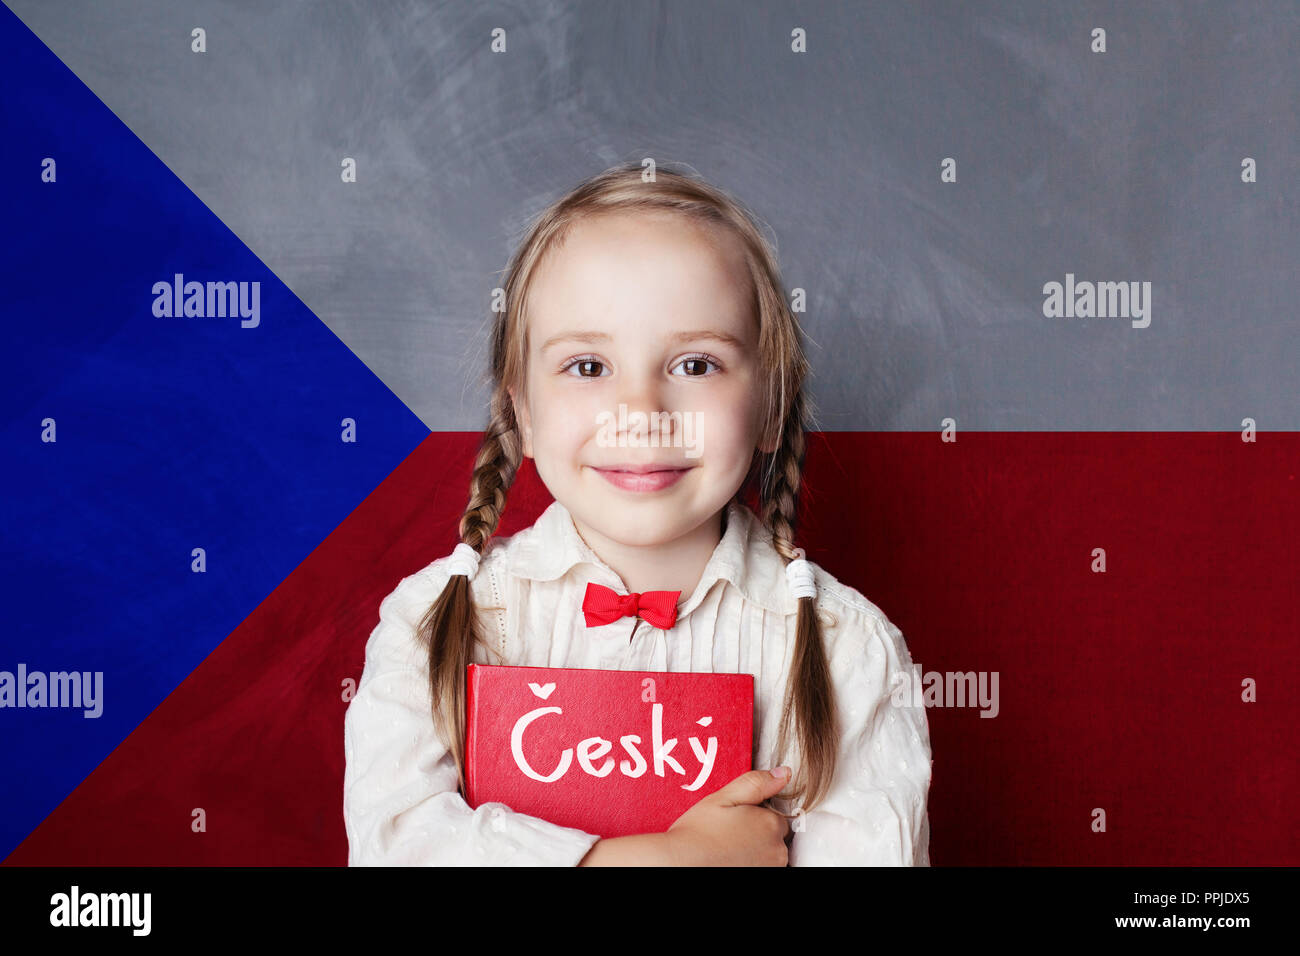 Czech concept with little girl student with book against the Czech flag background. Learn language - Stock Image